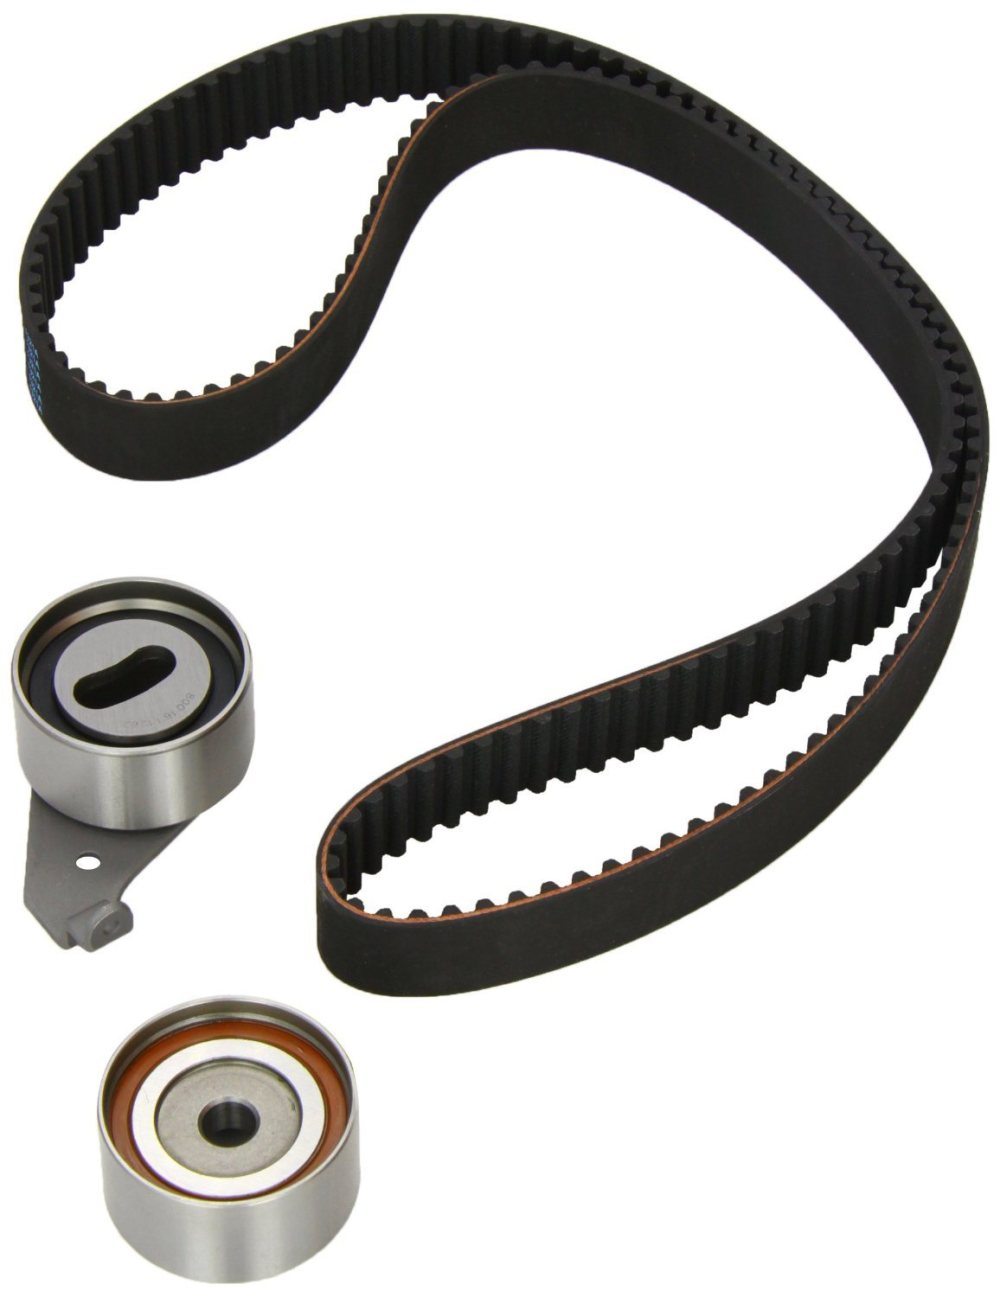 medium resolution of china timing belt kit 530026810 for holden toyota vkma91003 china timing chain kits timing belt kis